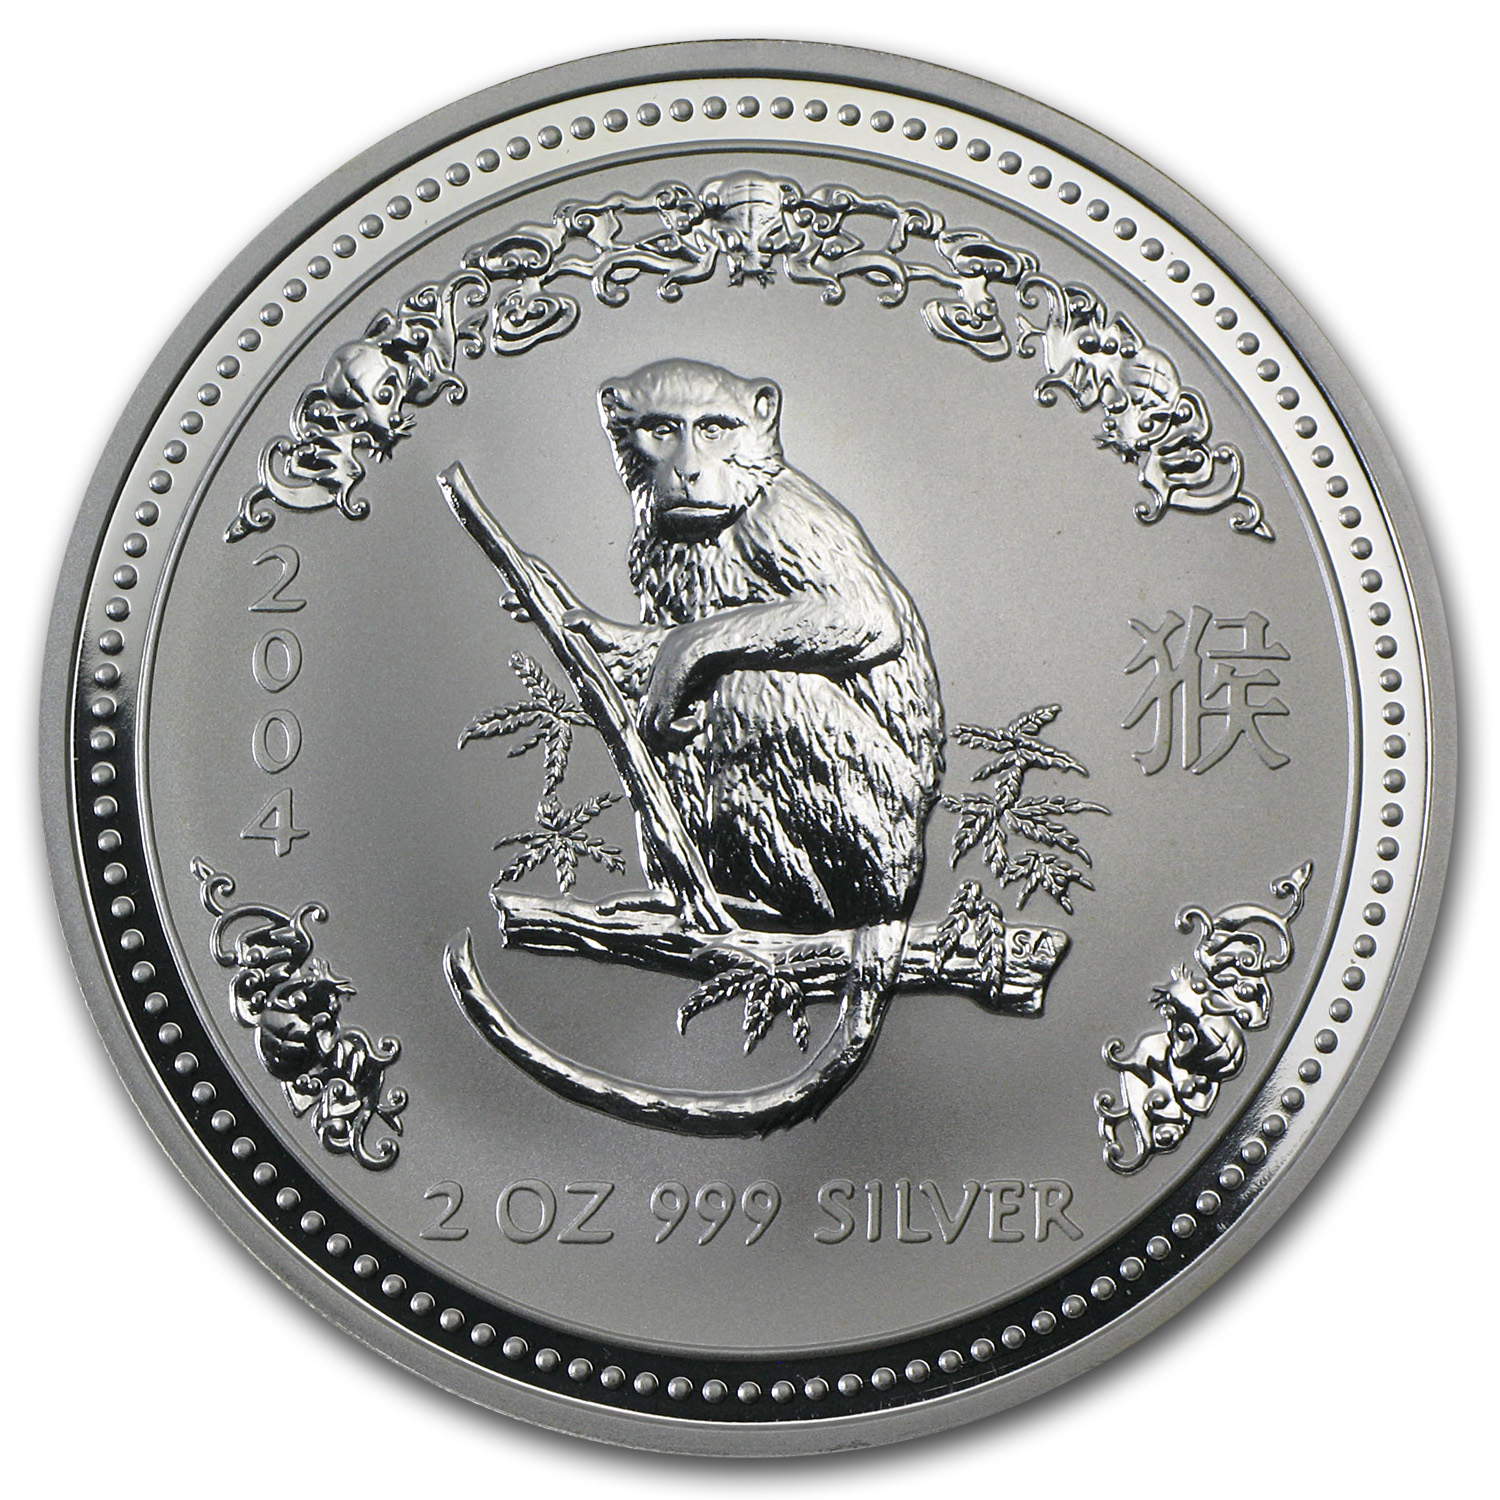 2004 2 oz Silver Australian Year of the Monkey BU